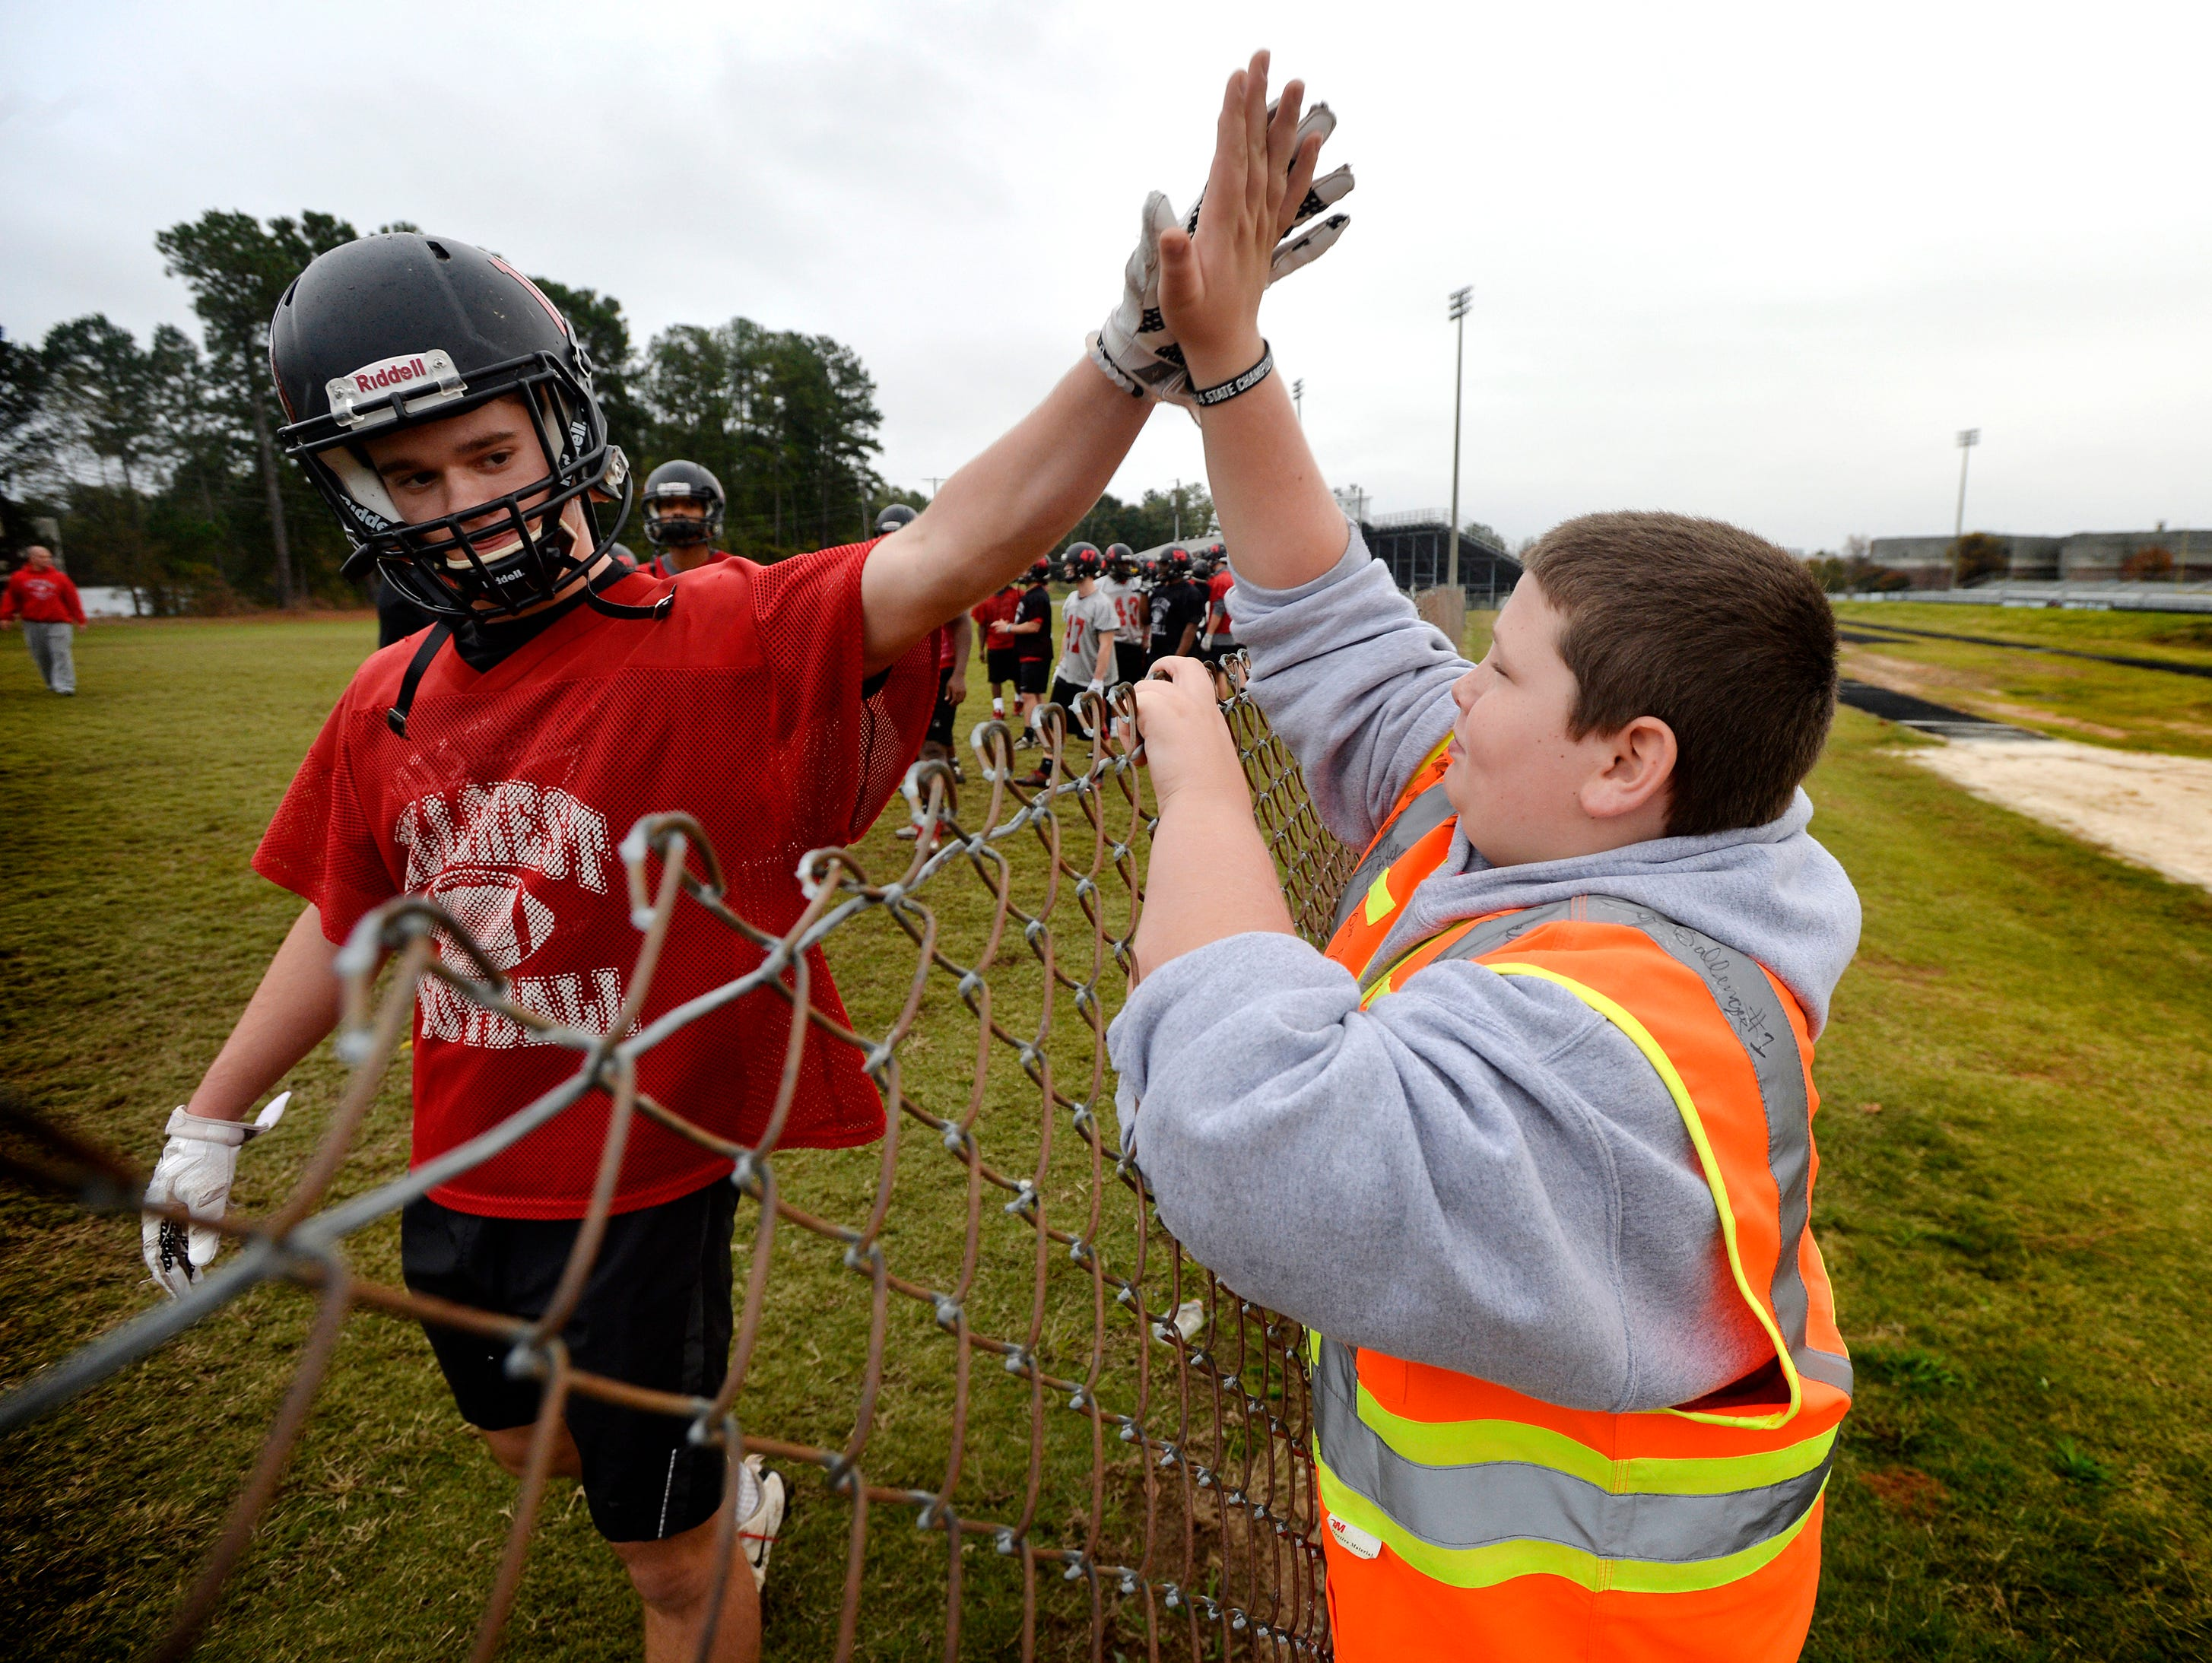 Hillcrest's Garrett Savage (18) high-fives 11-year-old Andrew Pepper as he watches the Hillcrest High School Rams practice on Nov. 5, 2015. Pepper rides his bike to every Rams football game.